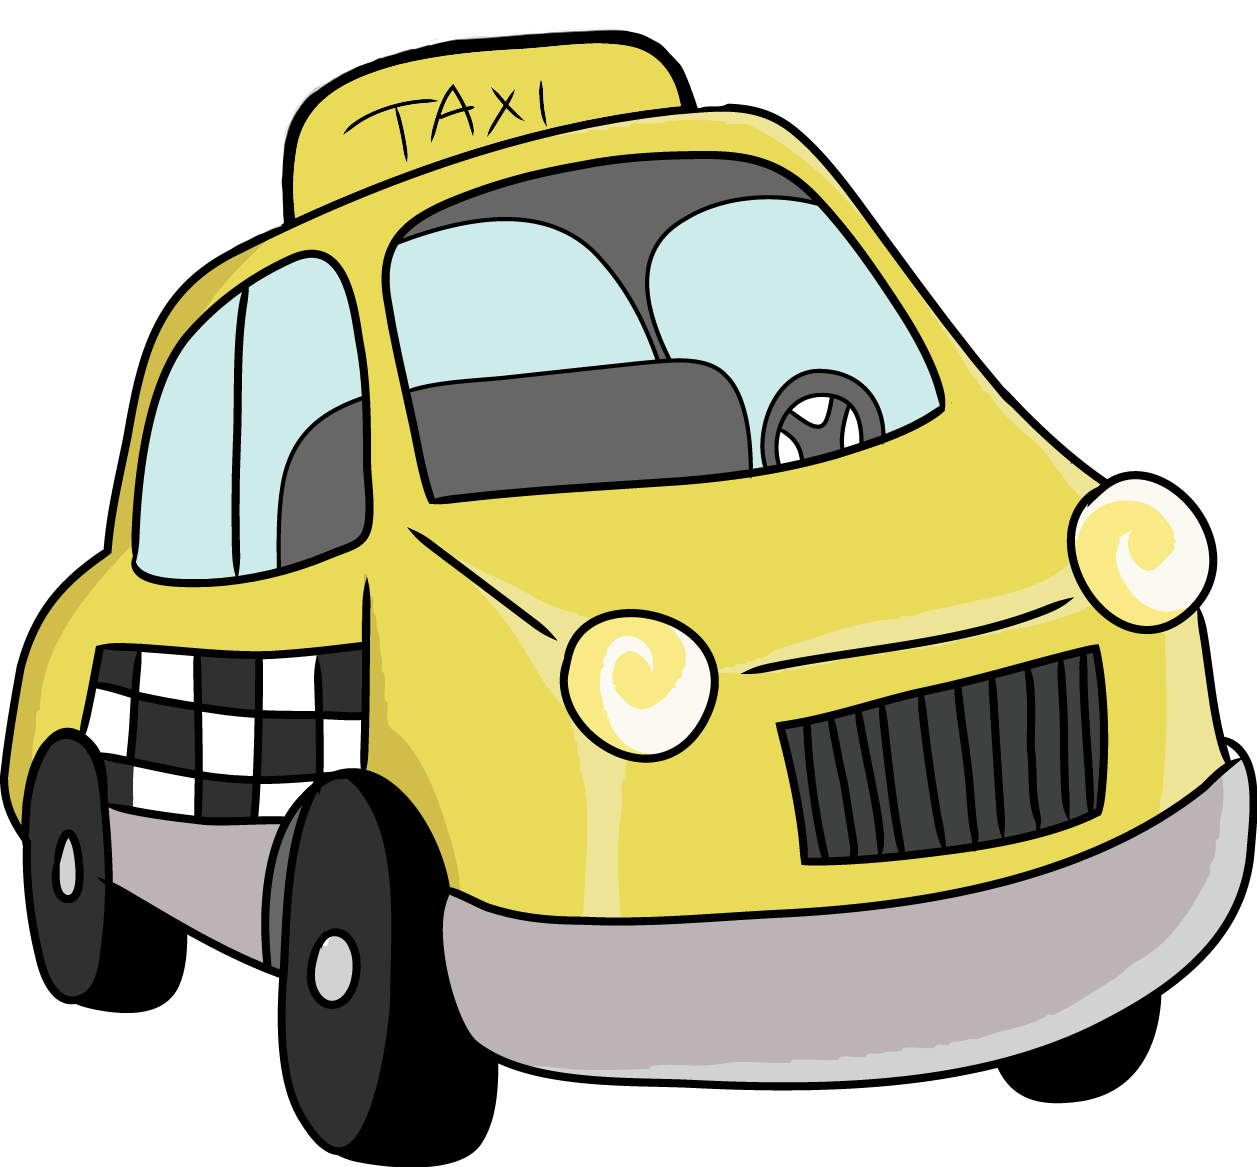 Cab pictures clipart image freeuse library Cab clipart 5 » Clipart Portal image freeuse library